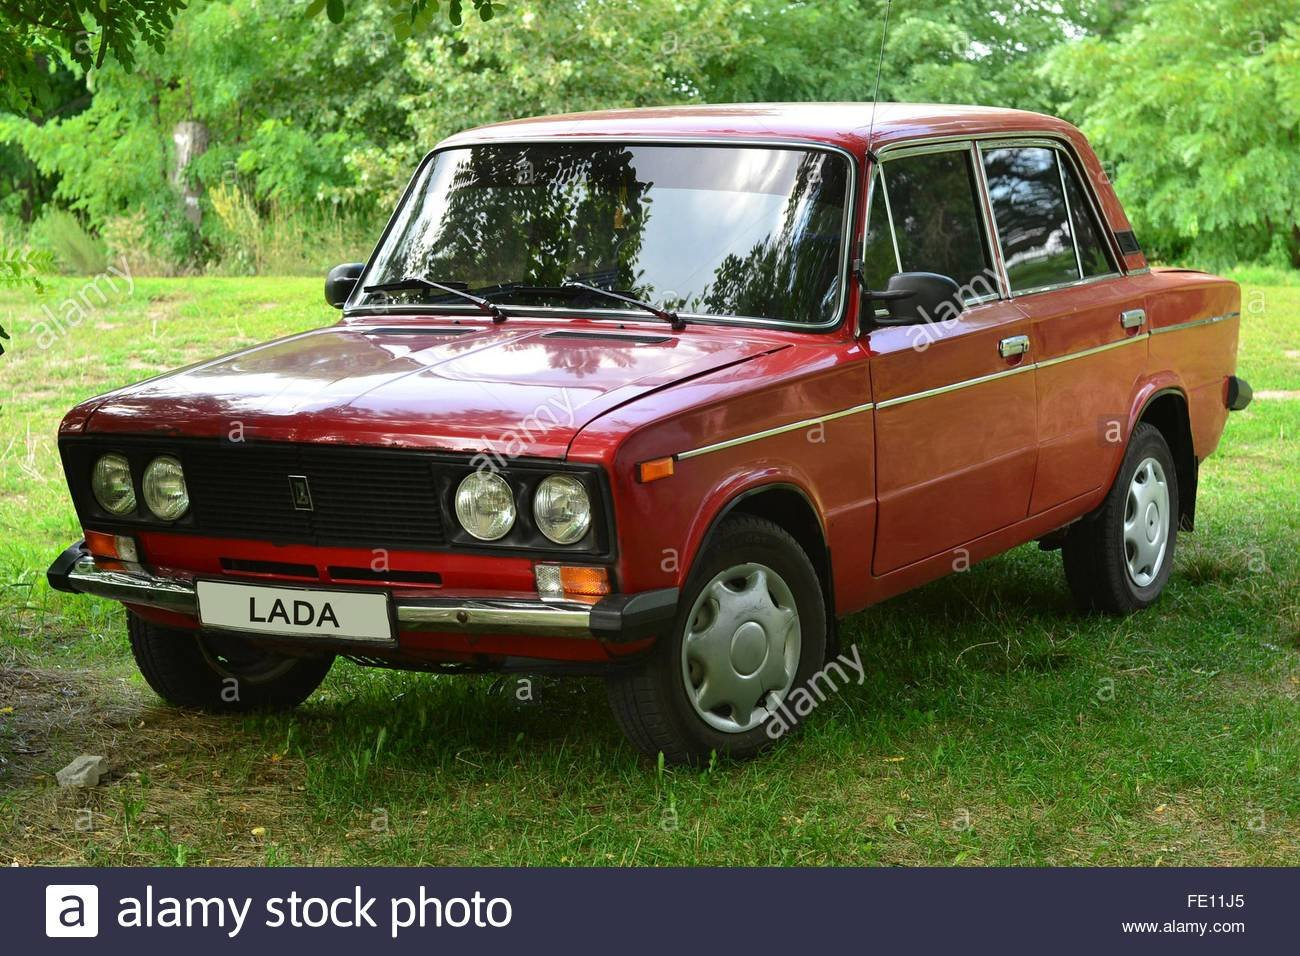 New Lada Stock Photos Lada Stock Images Alamy On This Month